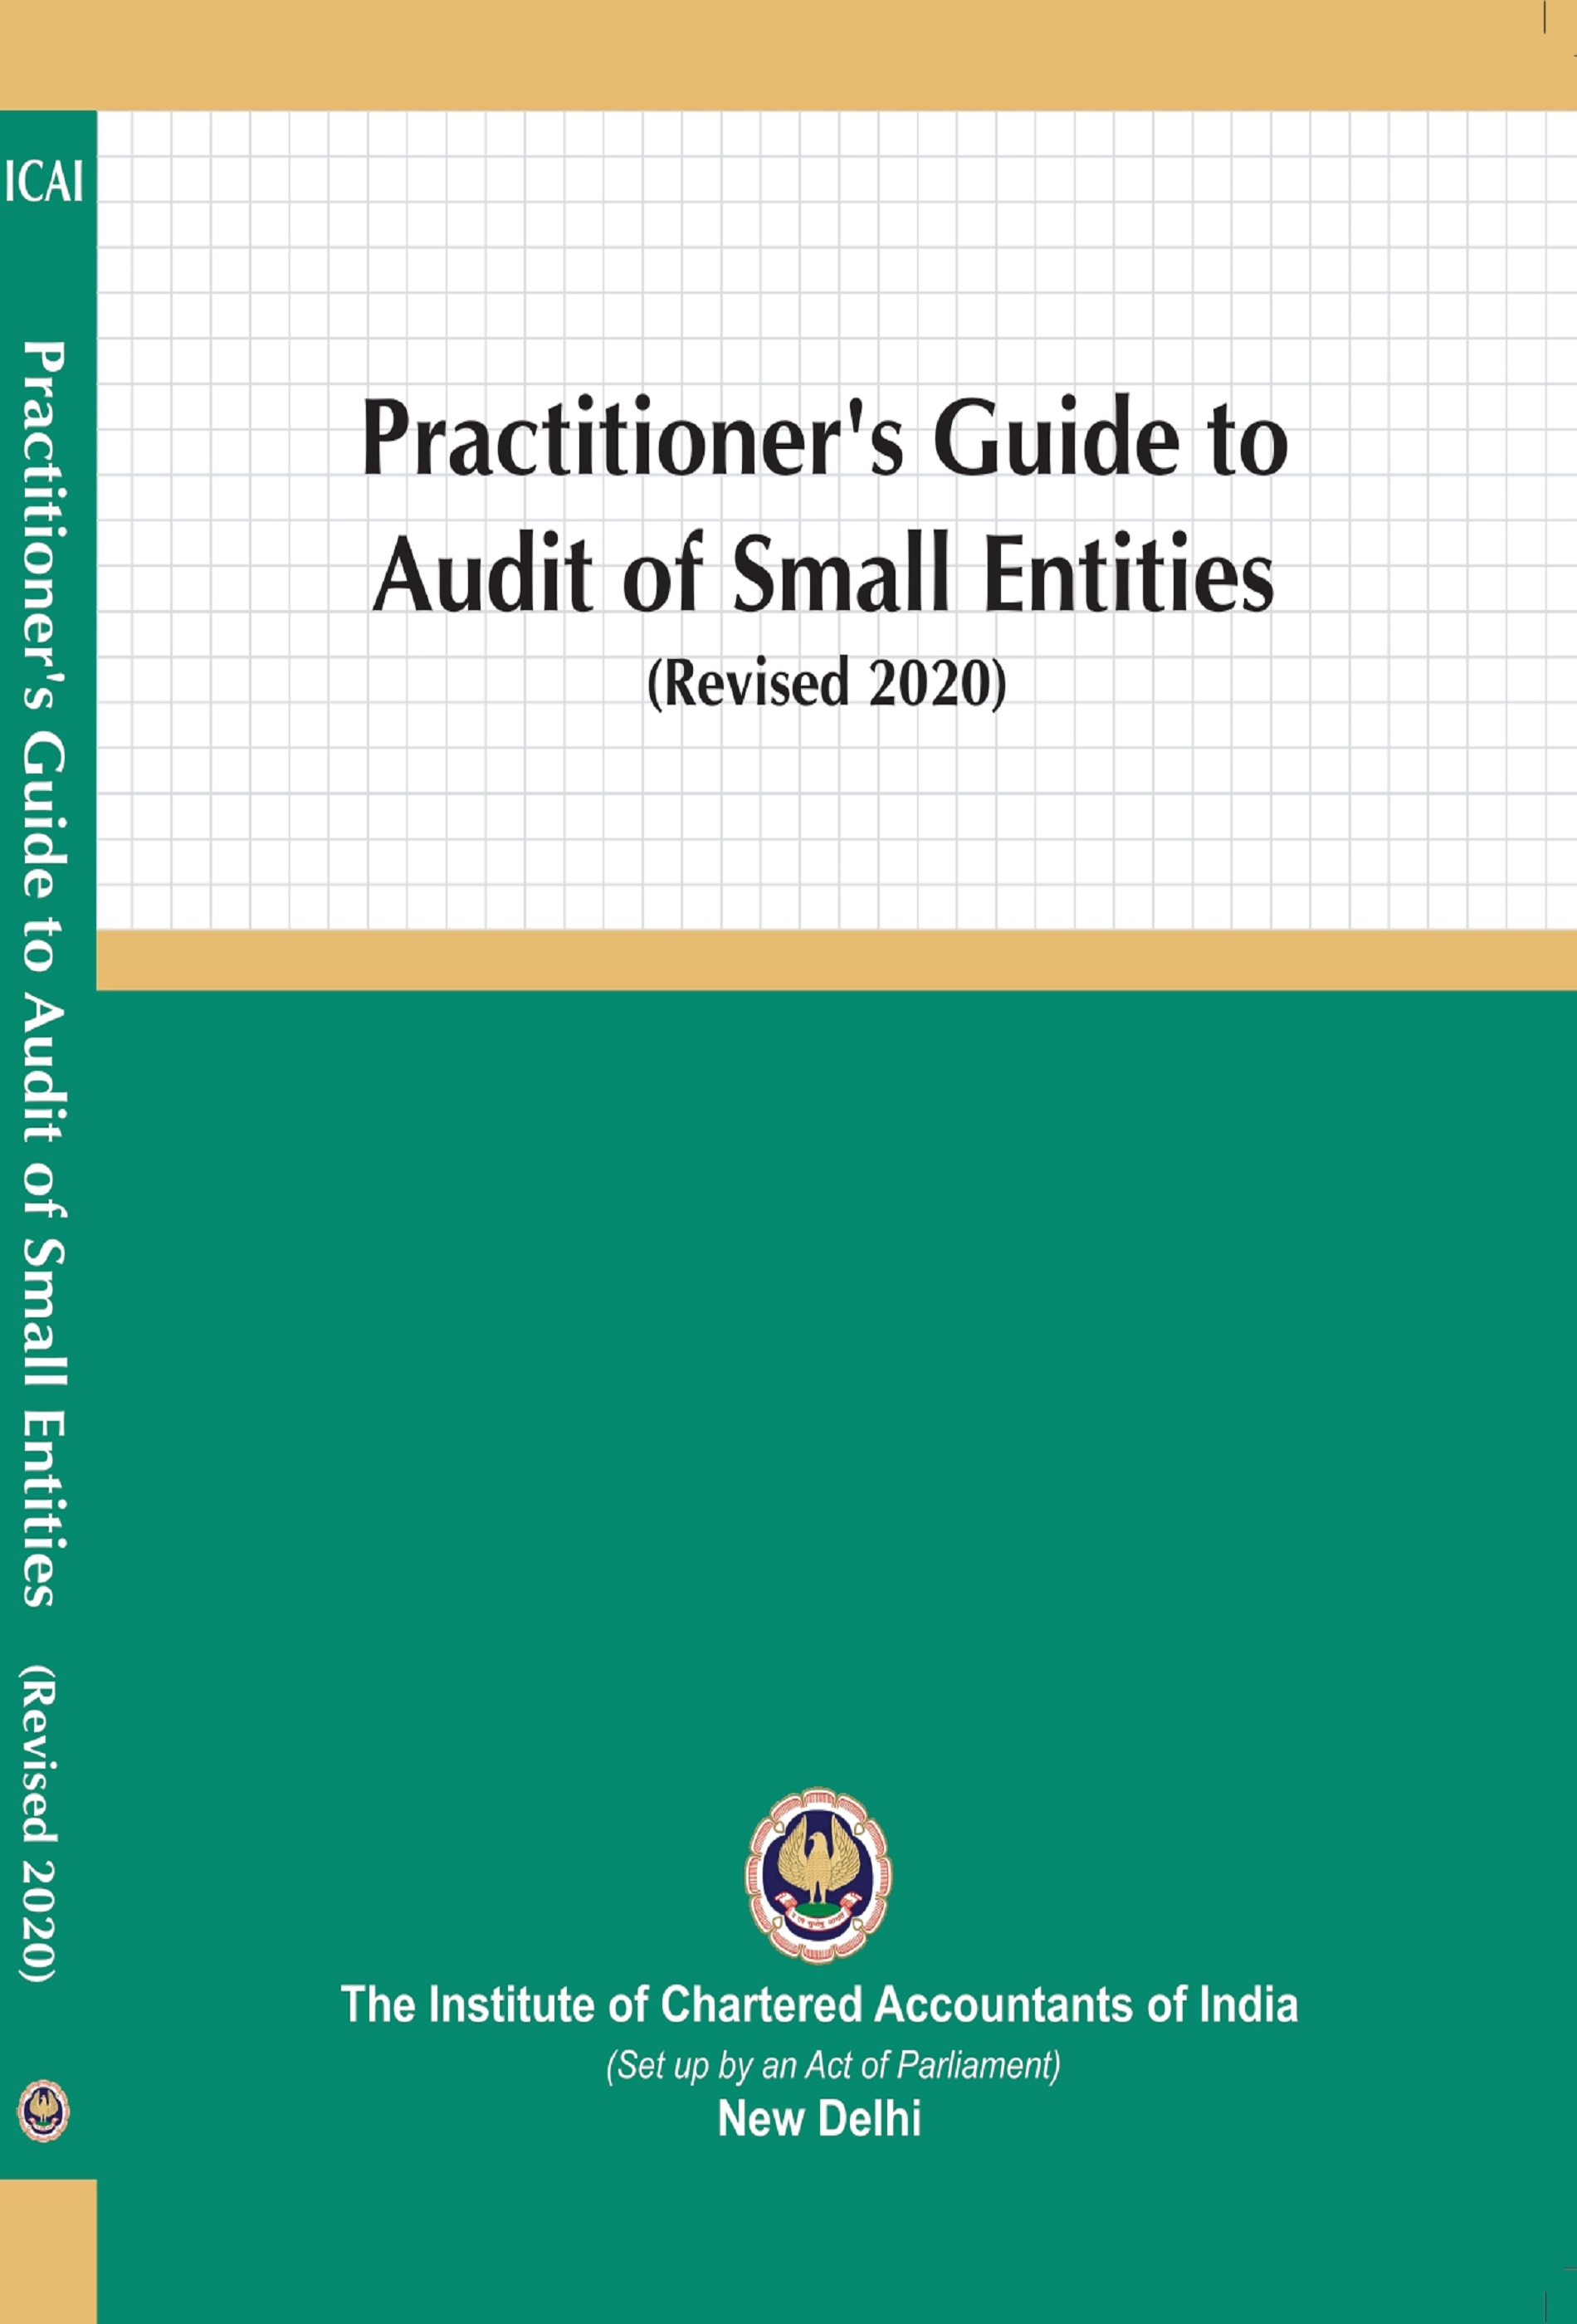 Practitioner's Guide to Audit of Small Entities (Revised 2020)